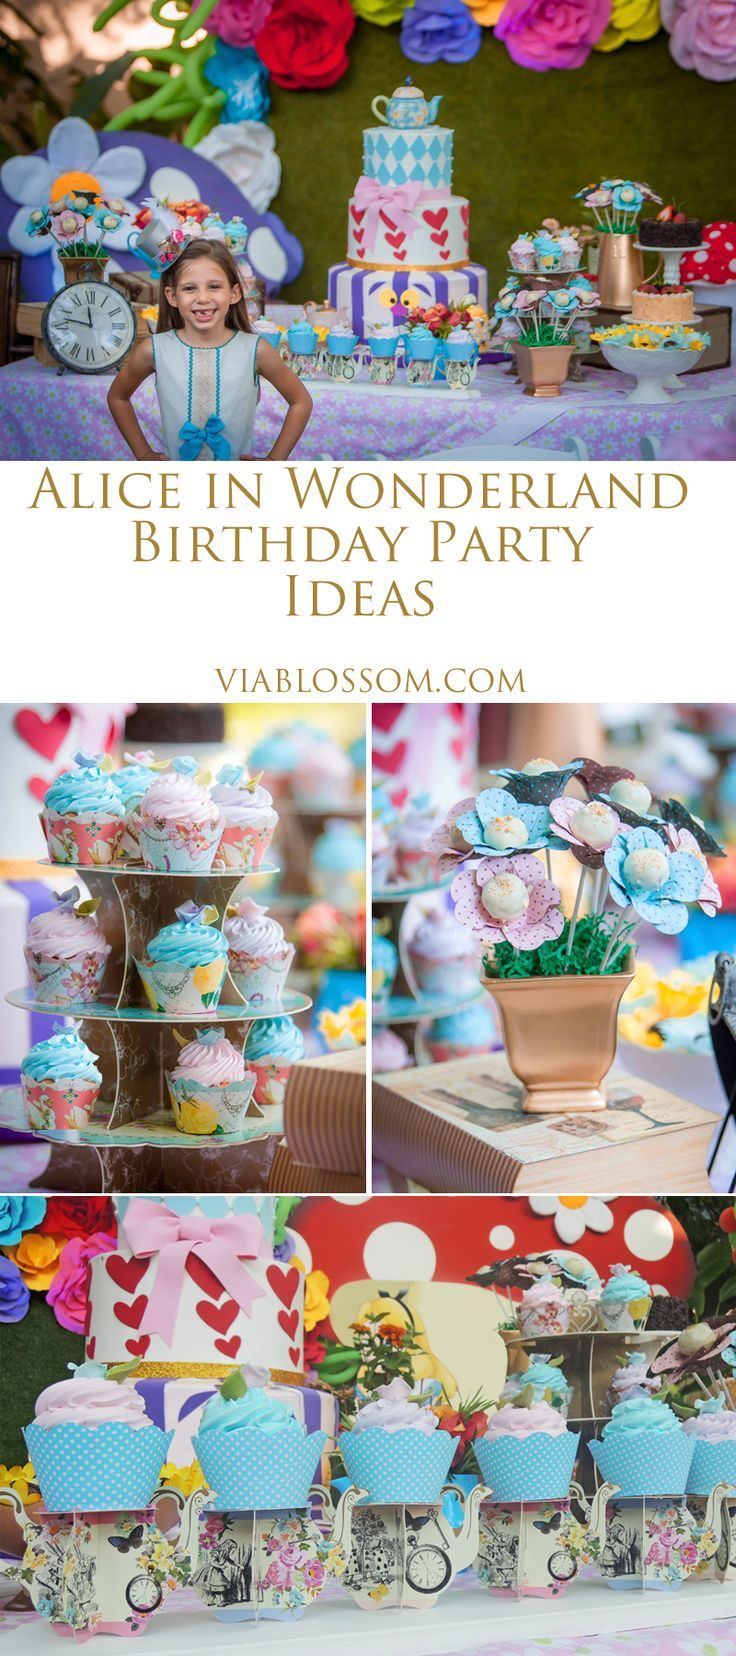 Mad hatter tea party decoration ideas - Alice In Wonderland Party Ideas For An Amazing Mad Hatter Tea Party You Will Love Our Alice In Wonderland Party Decorations